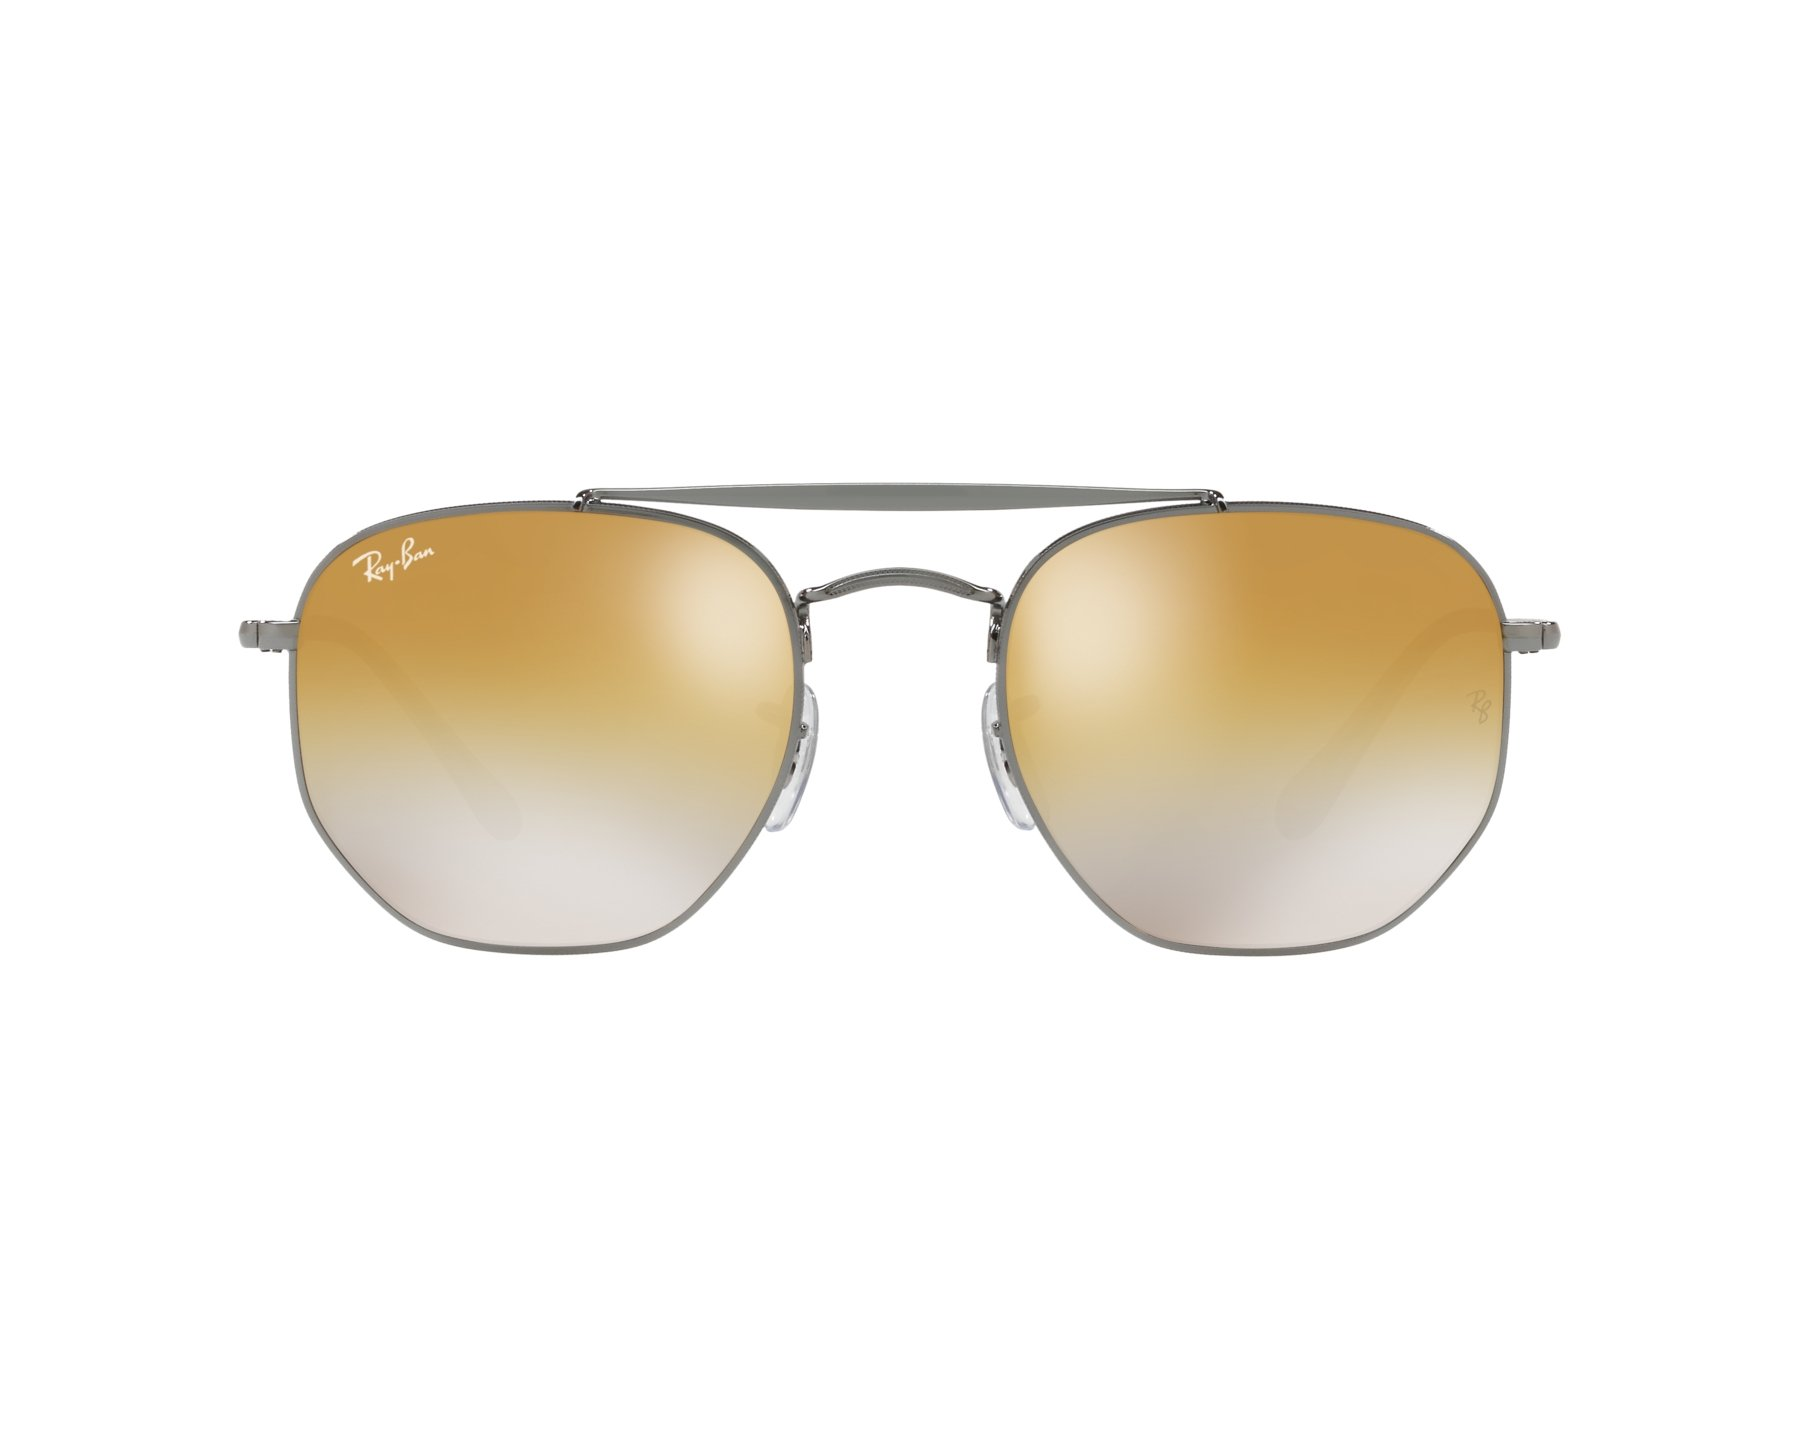 eedbebaa446 Sunglasses Ray-Ban RB-3648 004 l3 54-21 Gun 360 degree